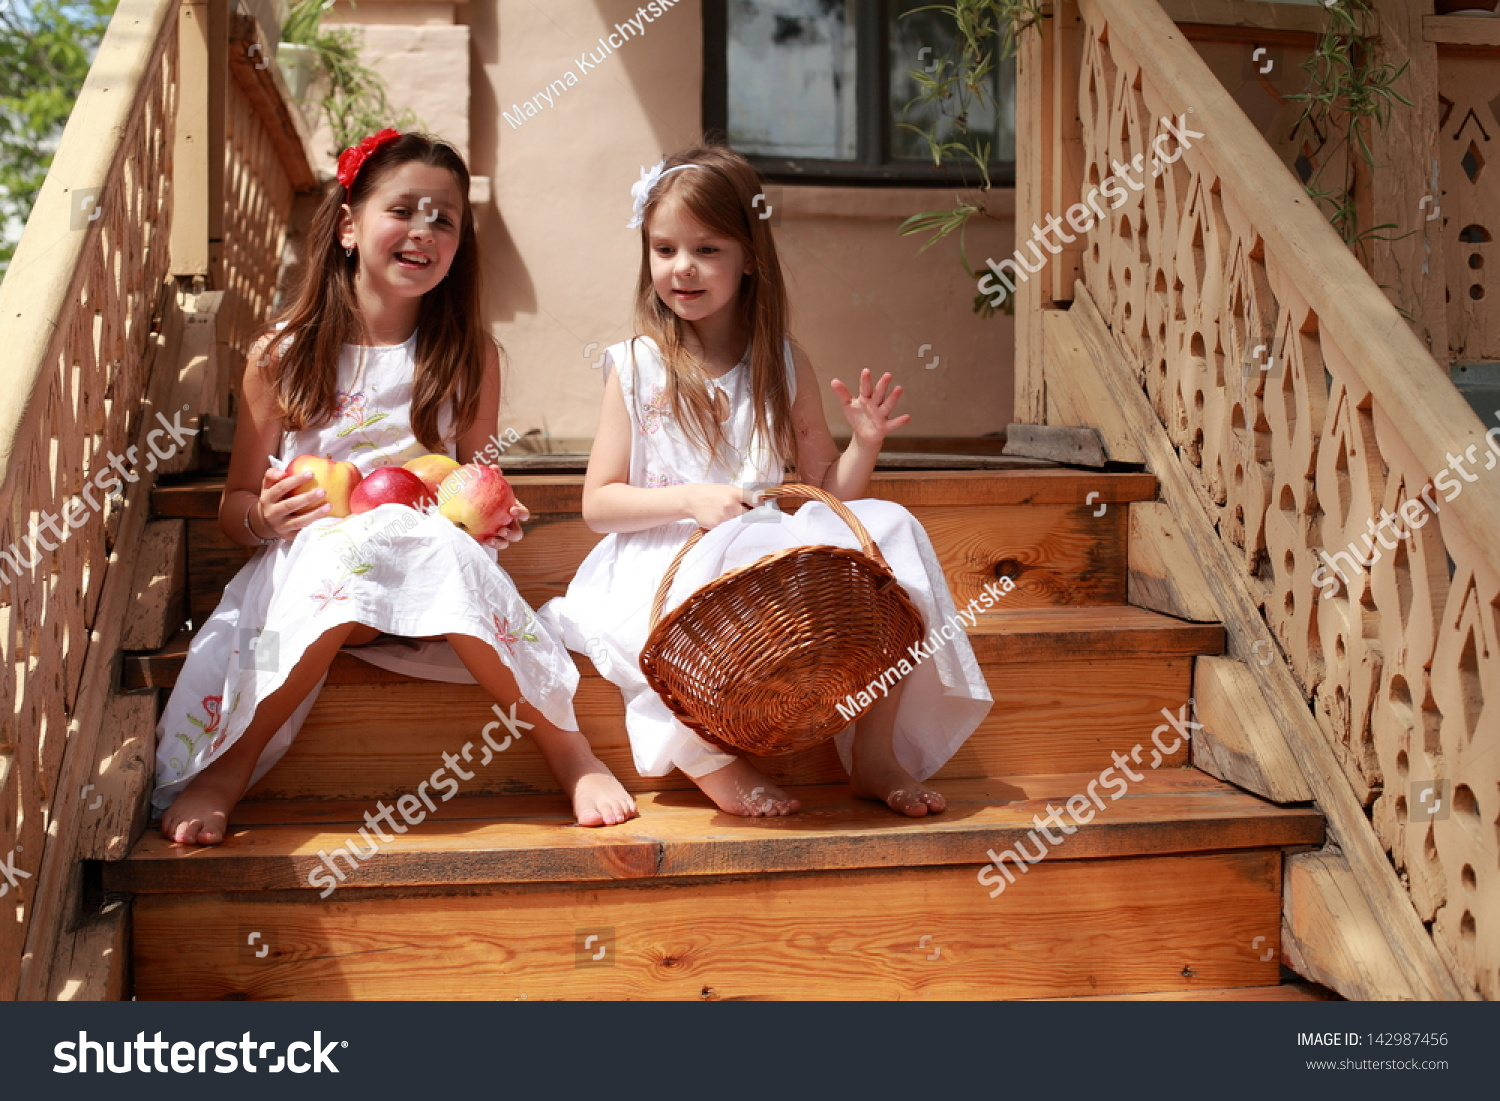 https://image.shutterstock.com/z/stock-photo-two-little-girls-in-white-dresses-and-bare-feet-holding-a-basket-of-apples-142987456.jpg